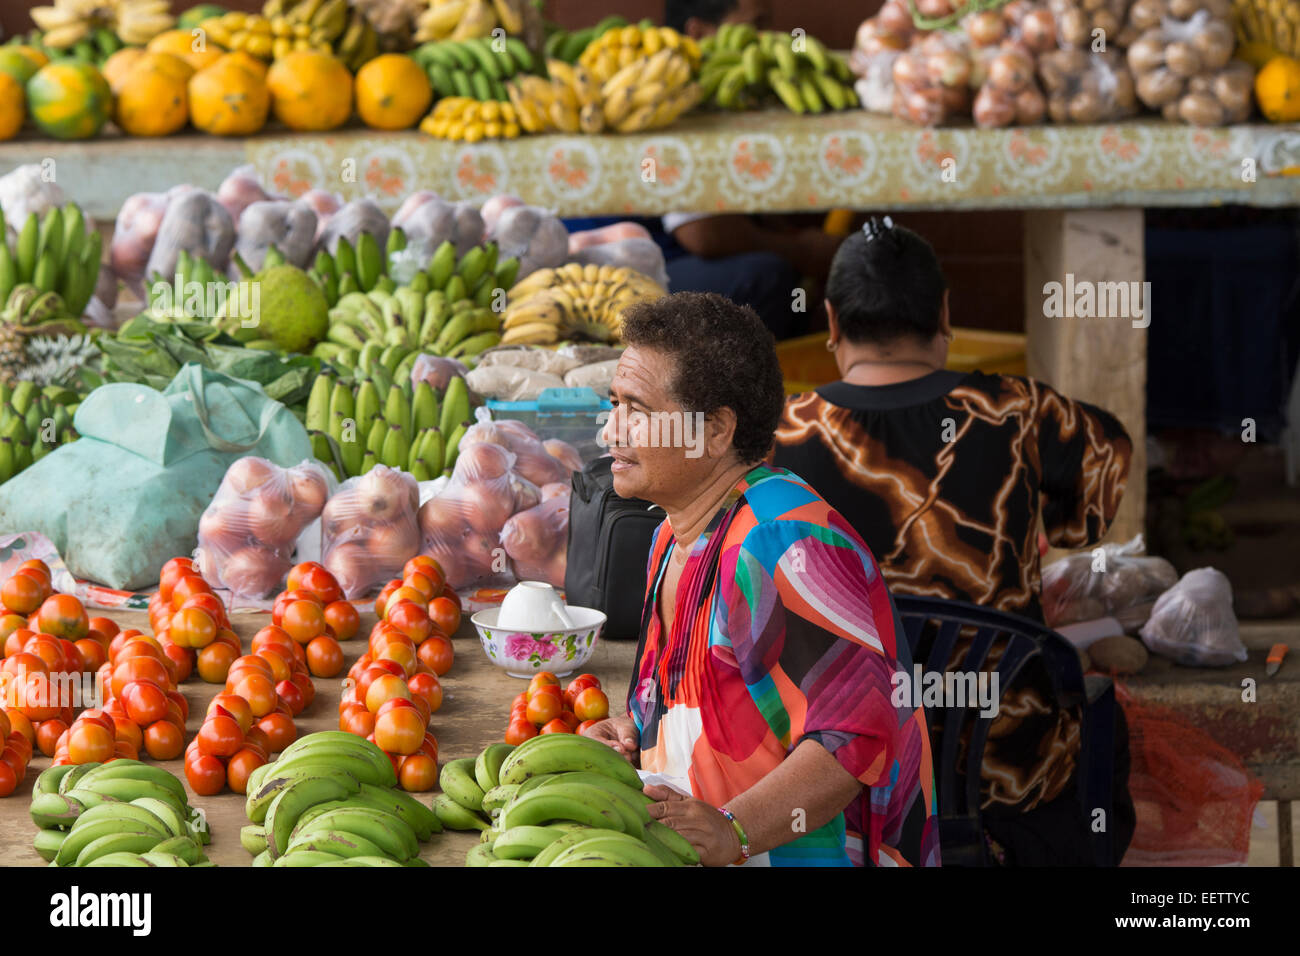 Kingdom of Tonga, Vava'u Islands, Neiafu. Local produce market, vegetable vendor stand. - Stock Image